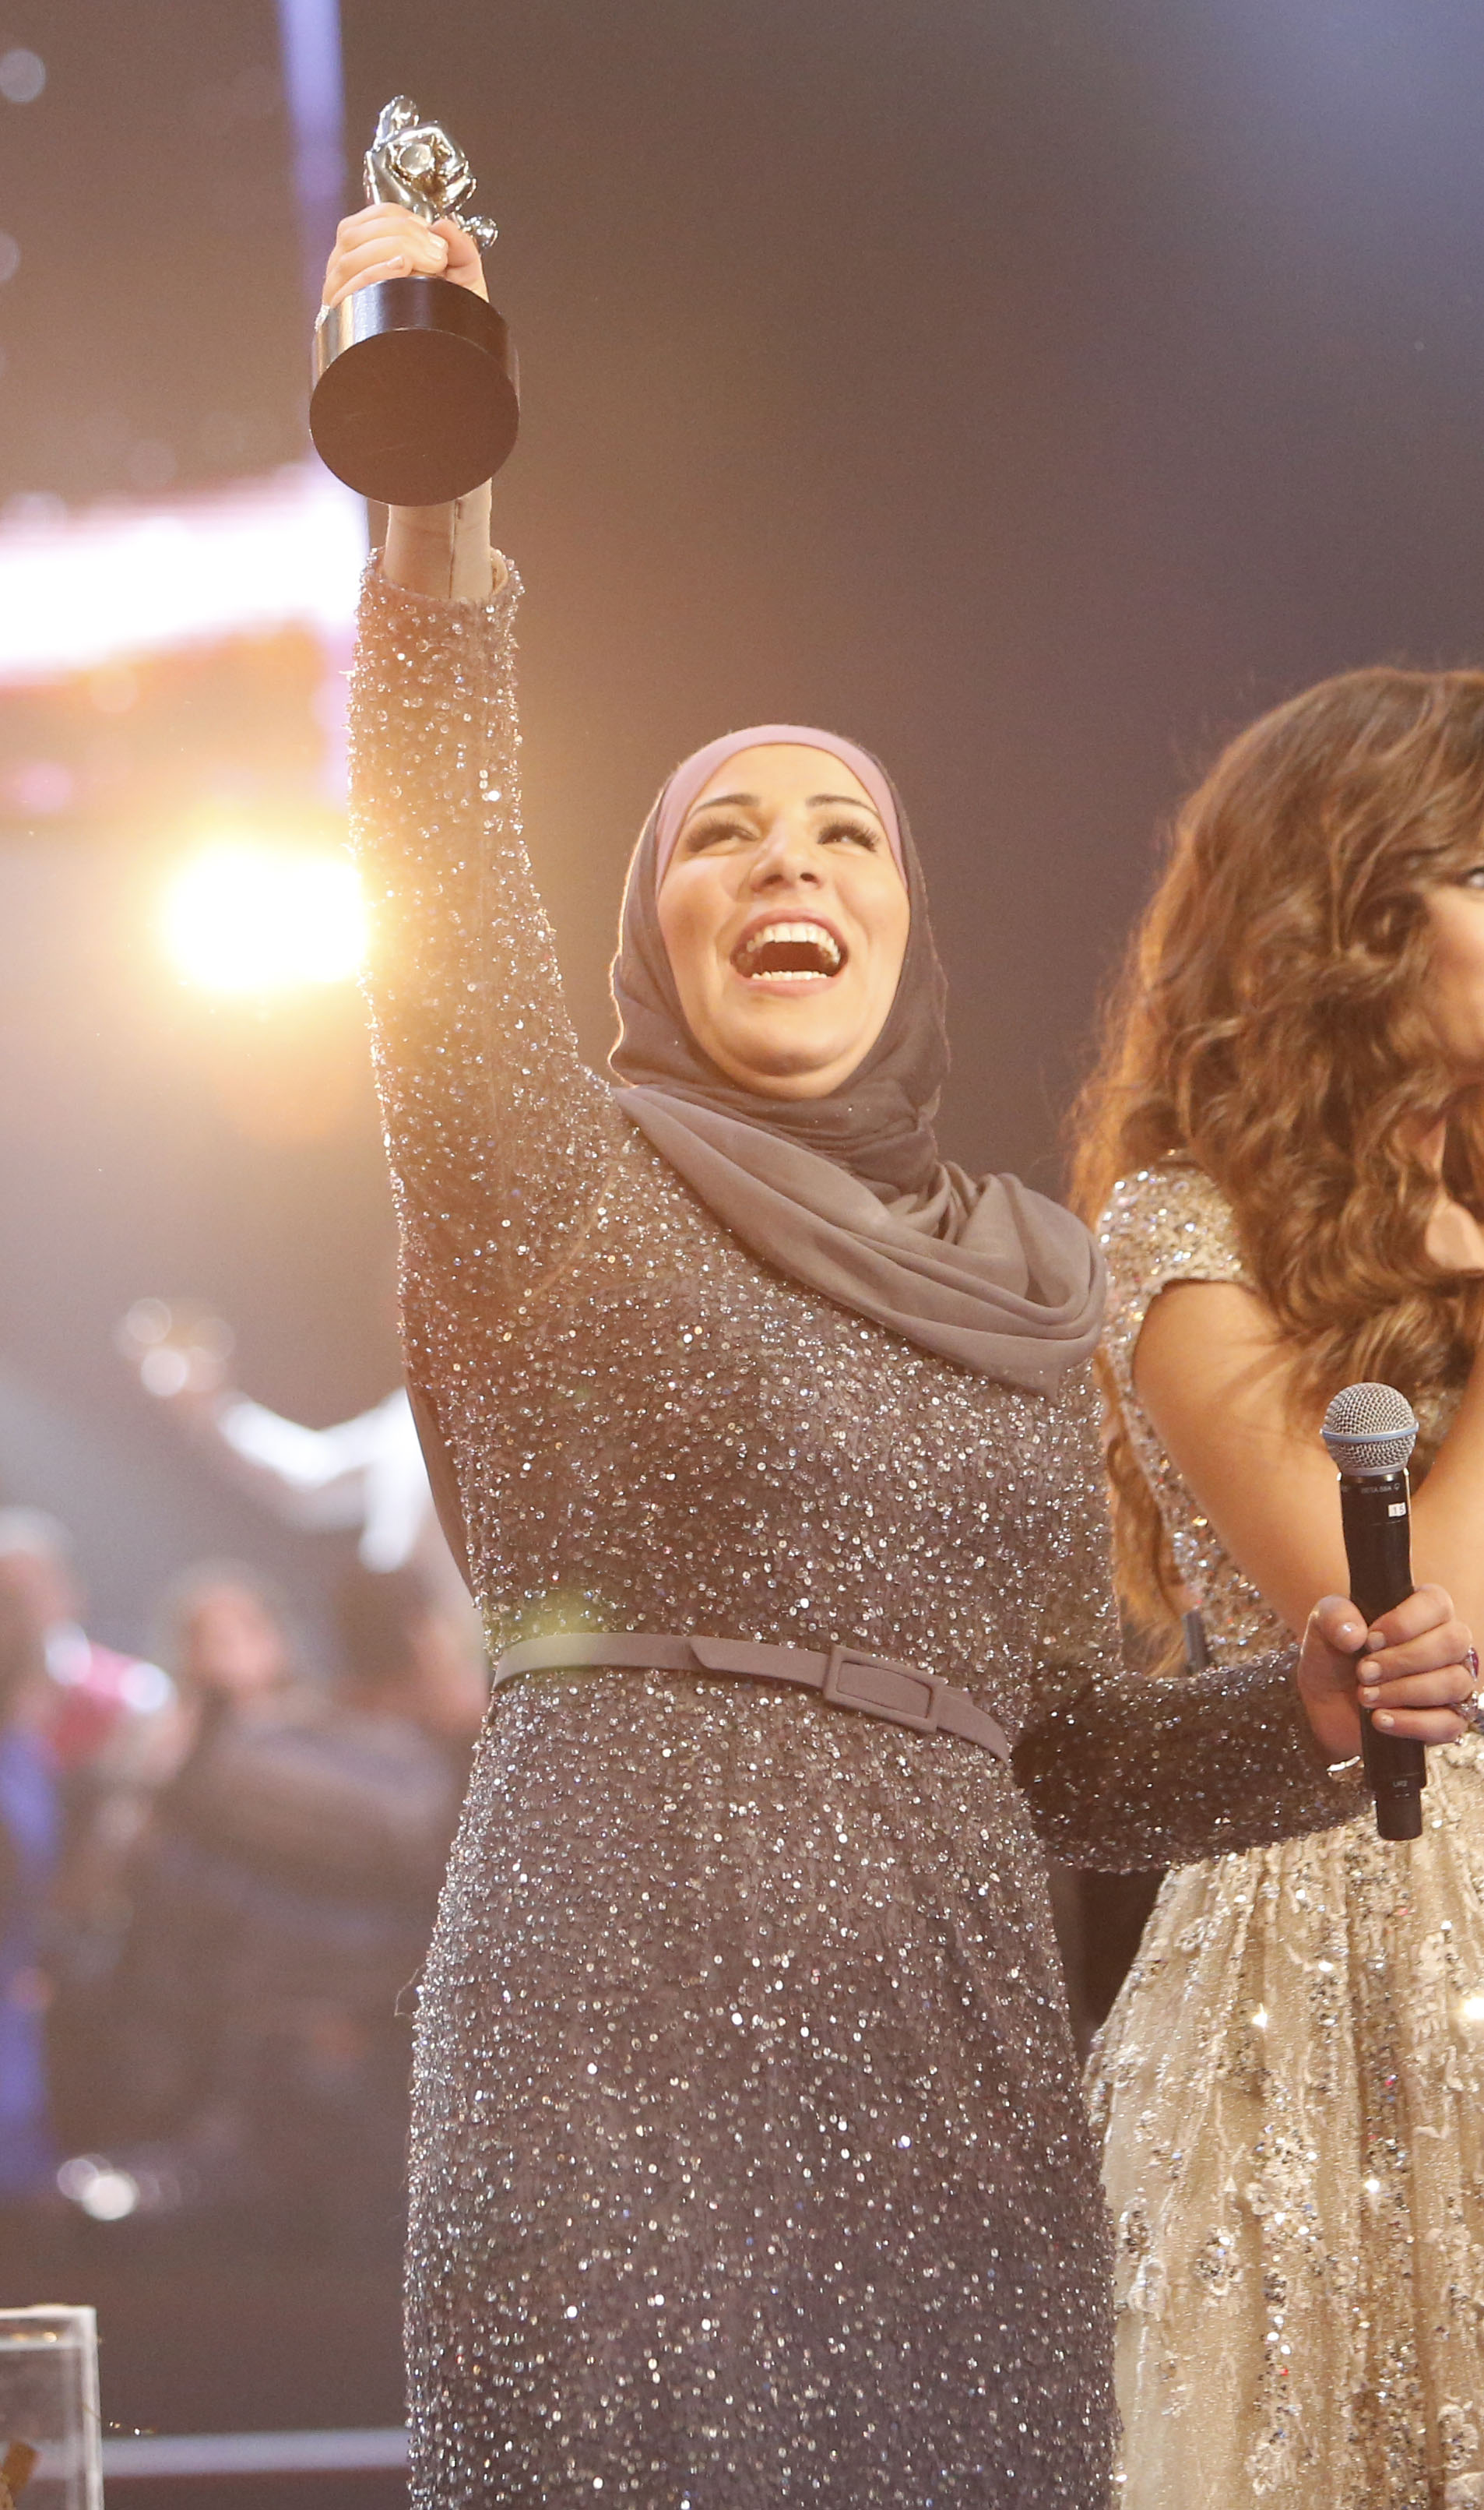 MBC1 & MBC MASR the Voice S3 - Finale - winner Nidaa Charara